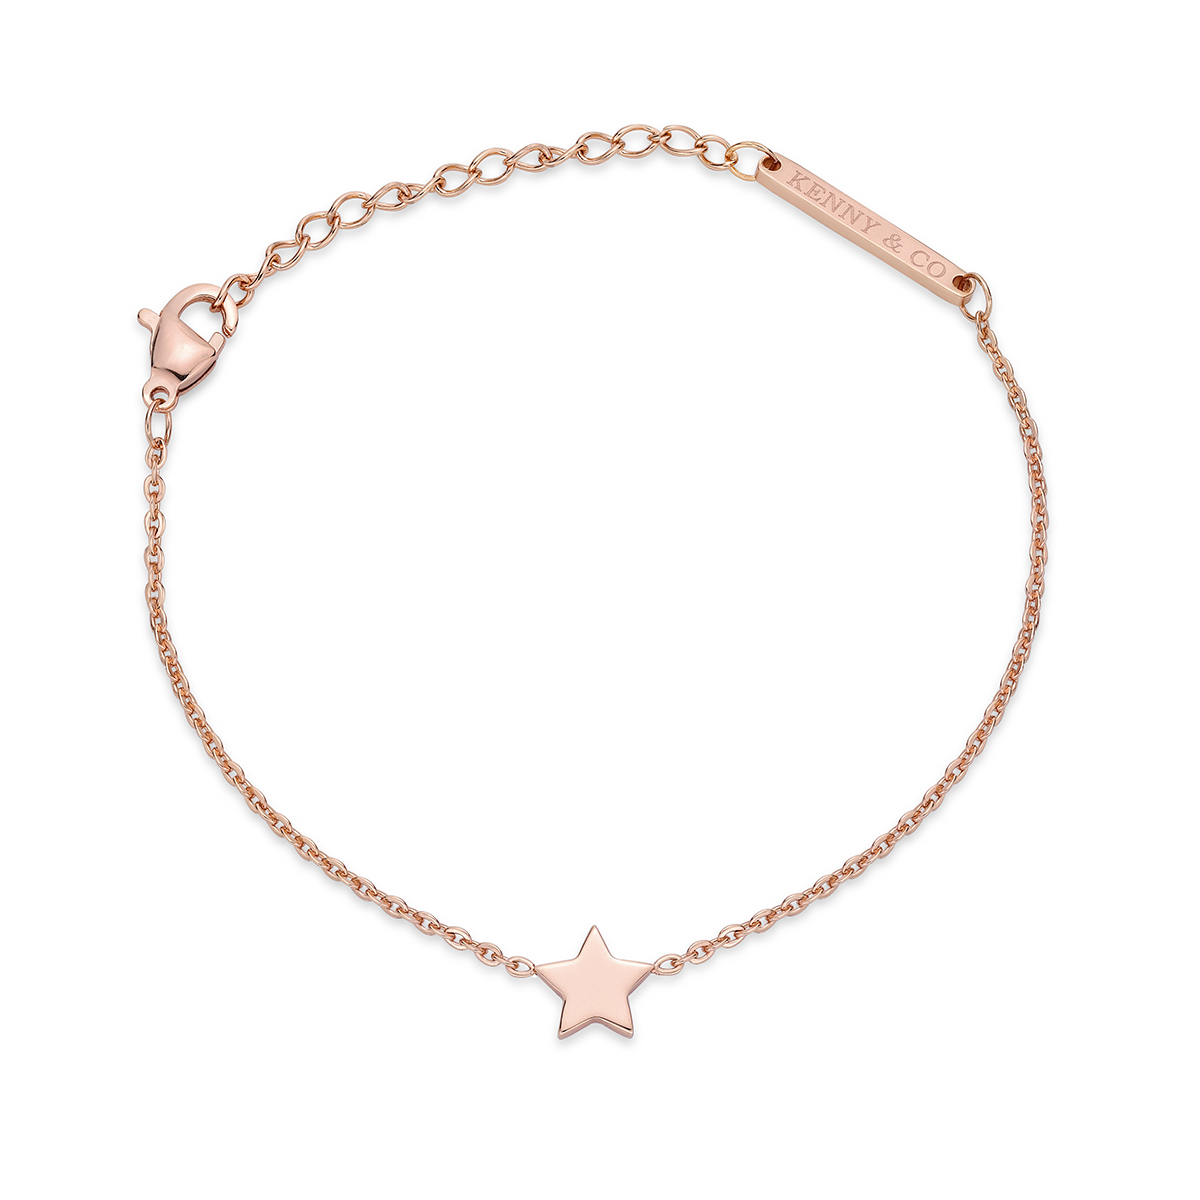 14K Rose Gold Plated Bracelet with Star Charm